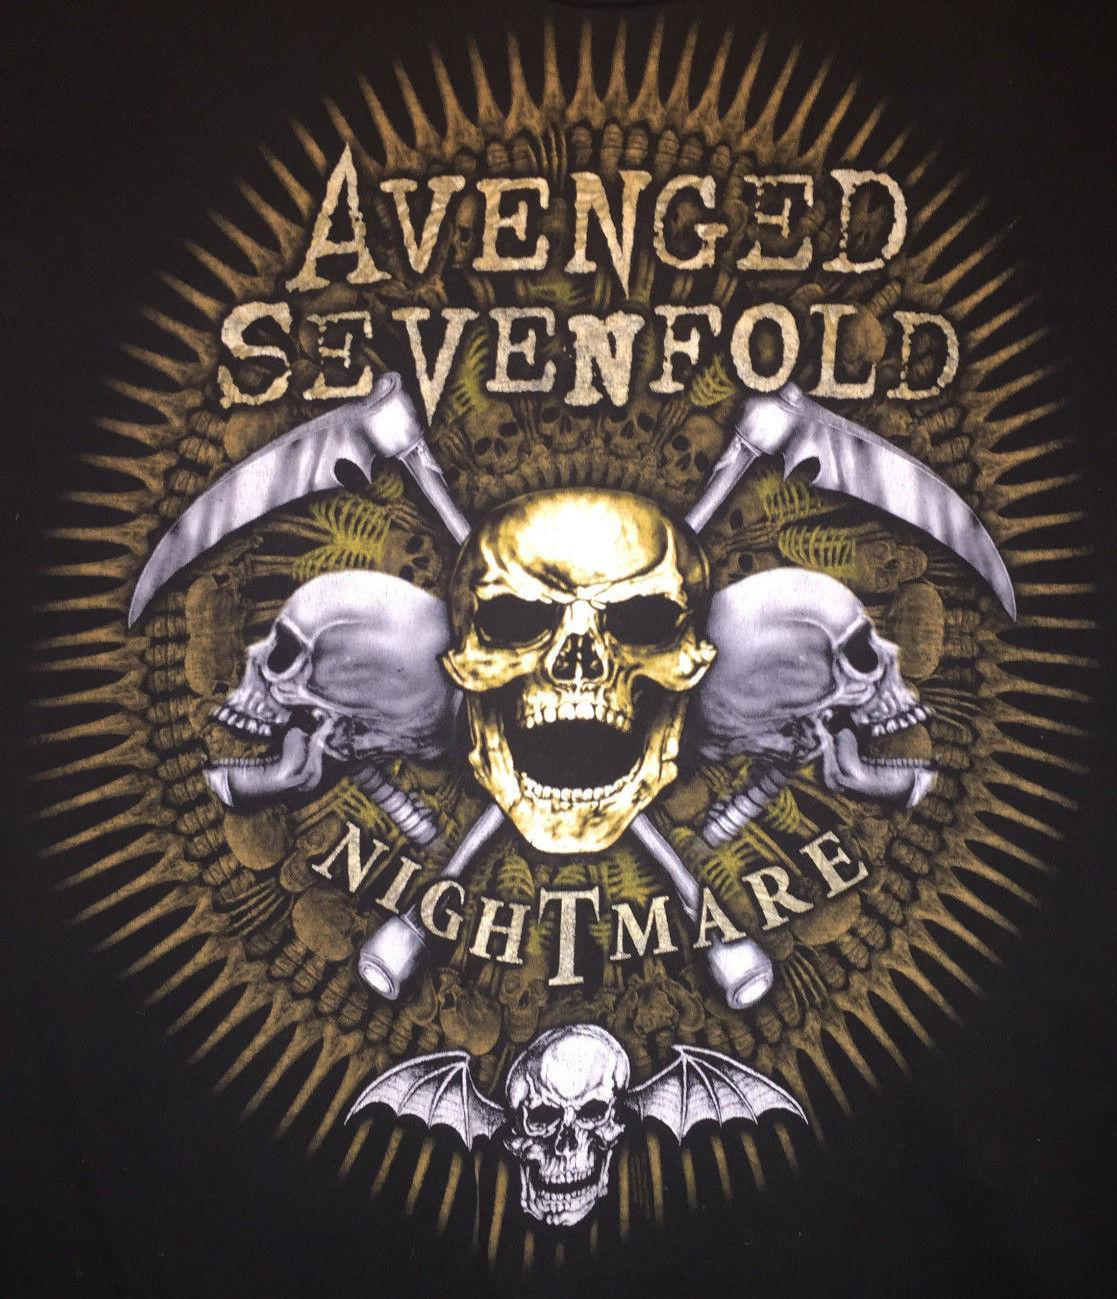 8a59ccb66 Large Black Music Band TShirt Avenged Sevenfold Logo Nightmare Amazing  Artwork Cartoon T Shirt Men Unisex On T Shirt Tourist Shirts From  Cls6688521